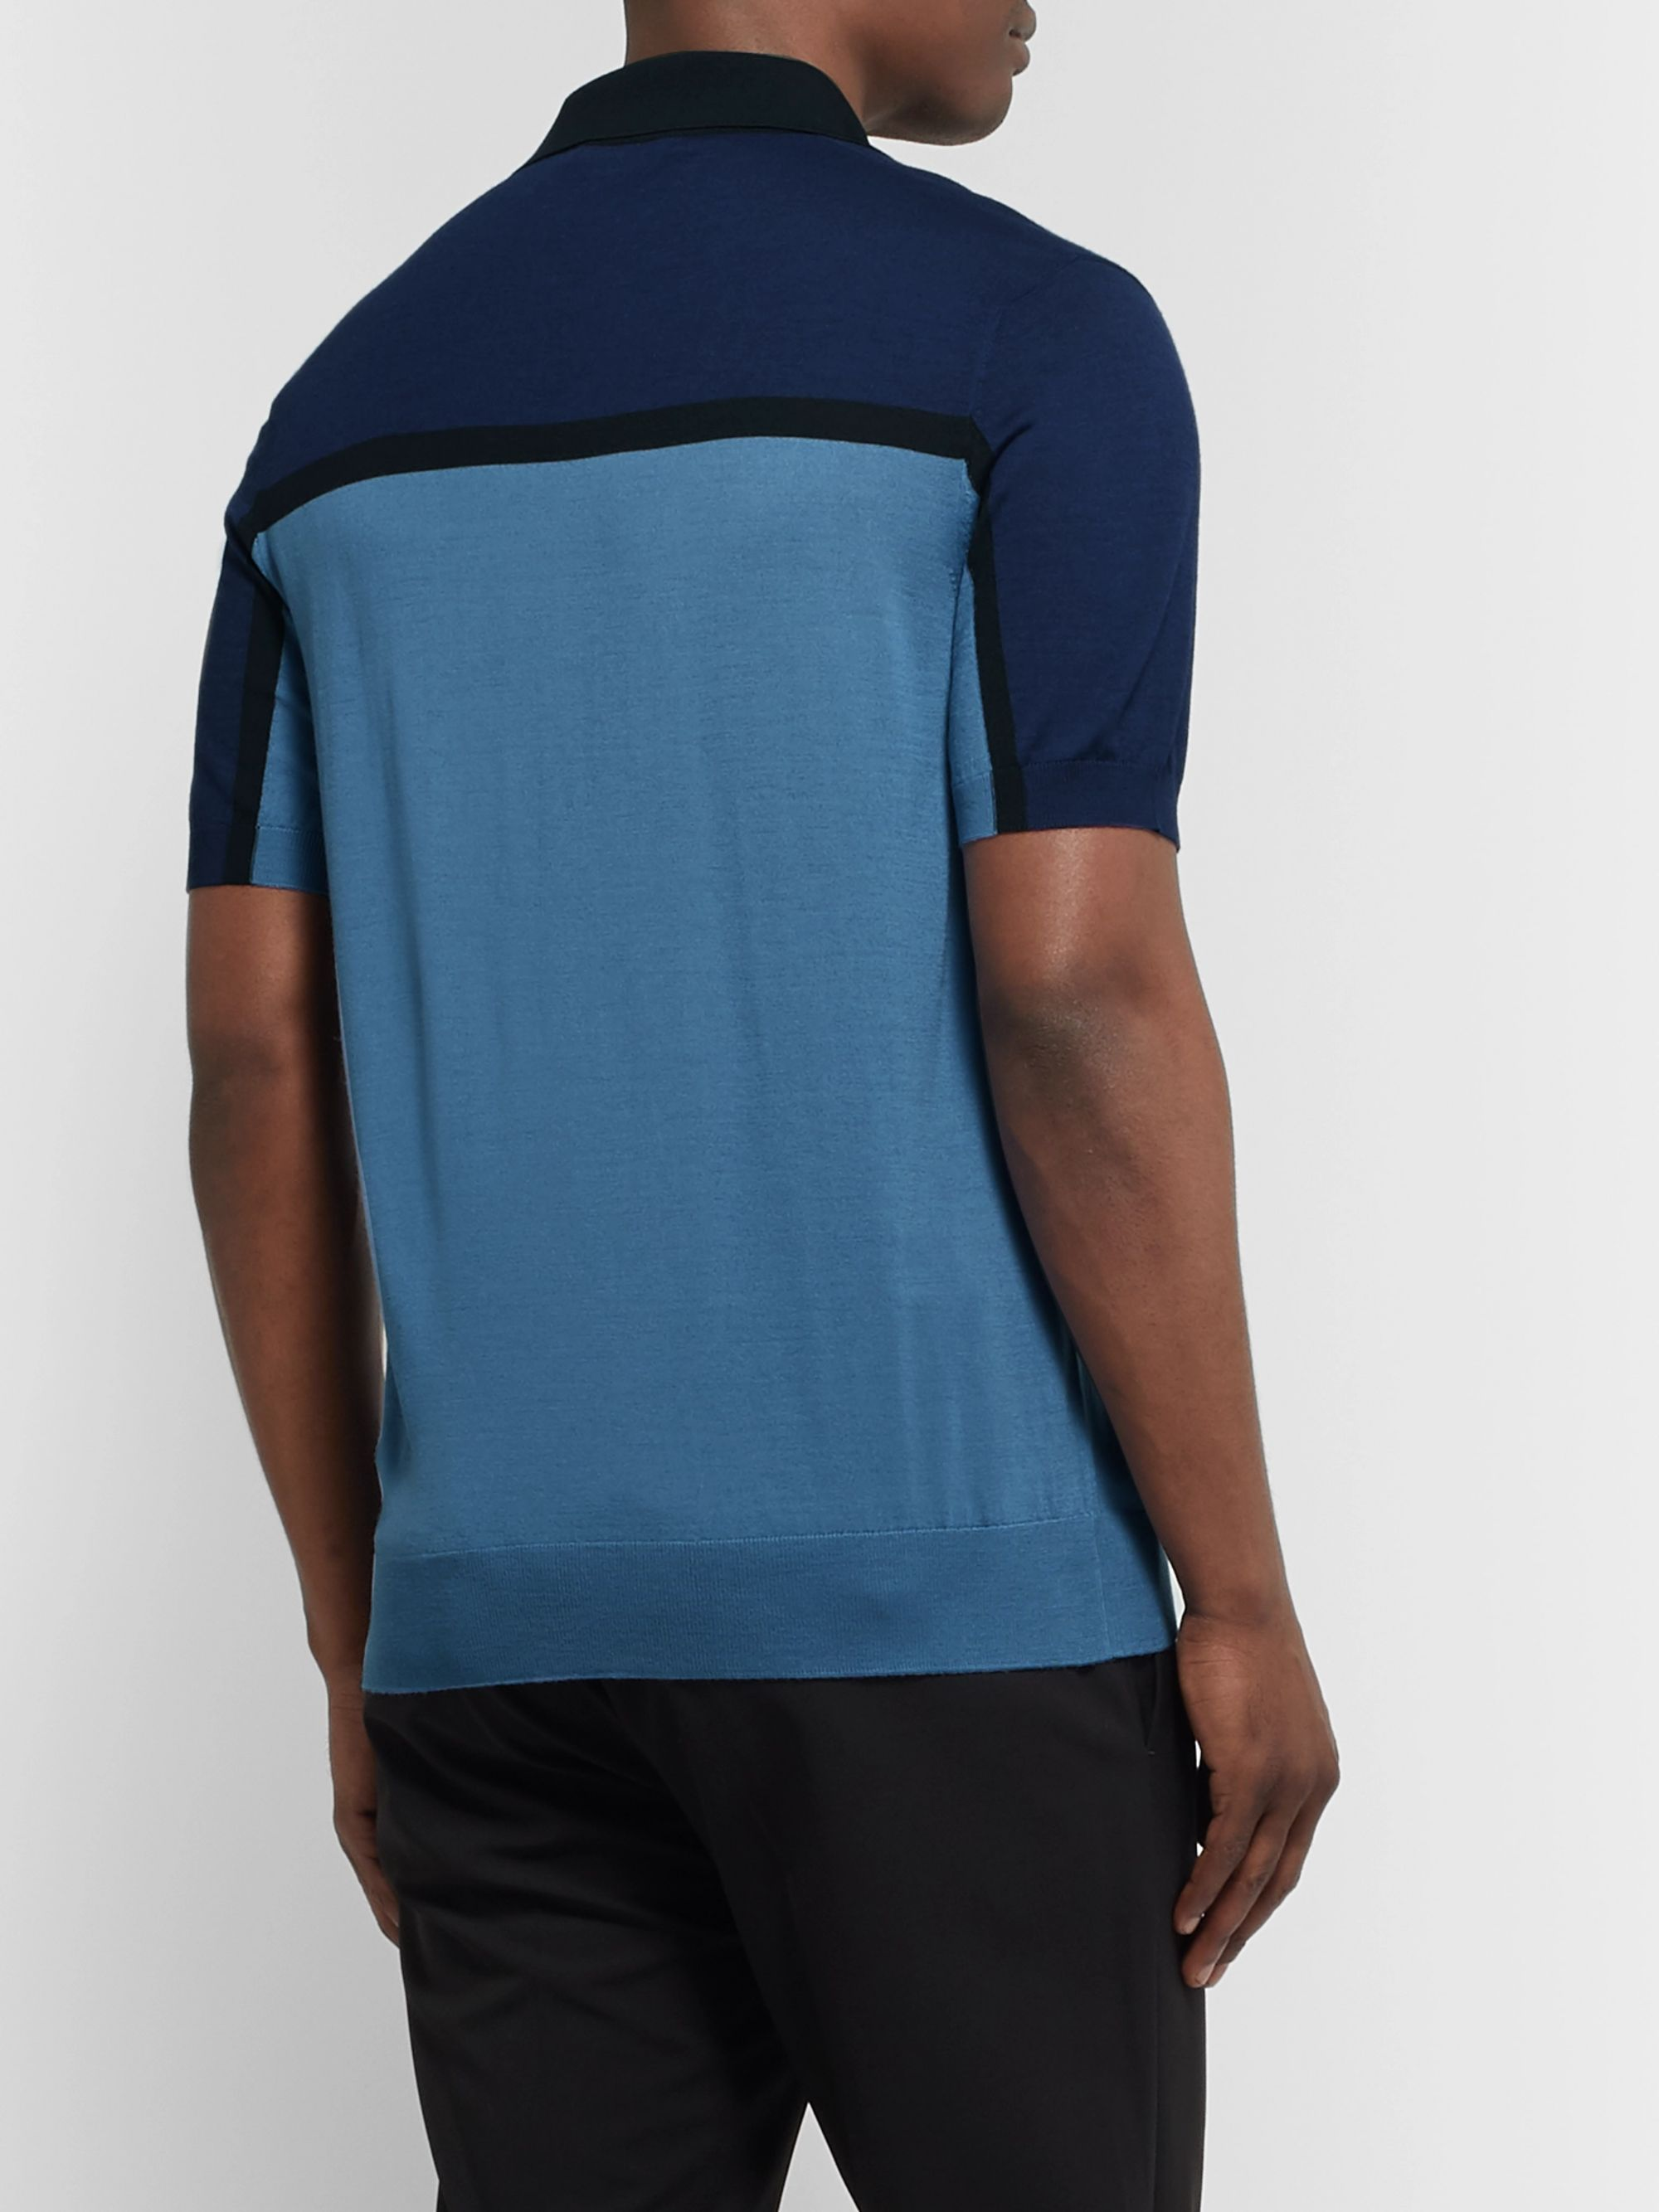 Prada Slim-Fit Colour-Block Knitted Virgin Wool Polo Shirt